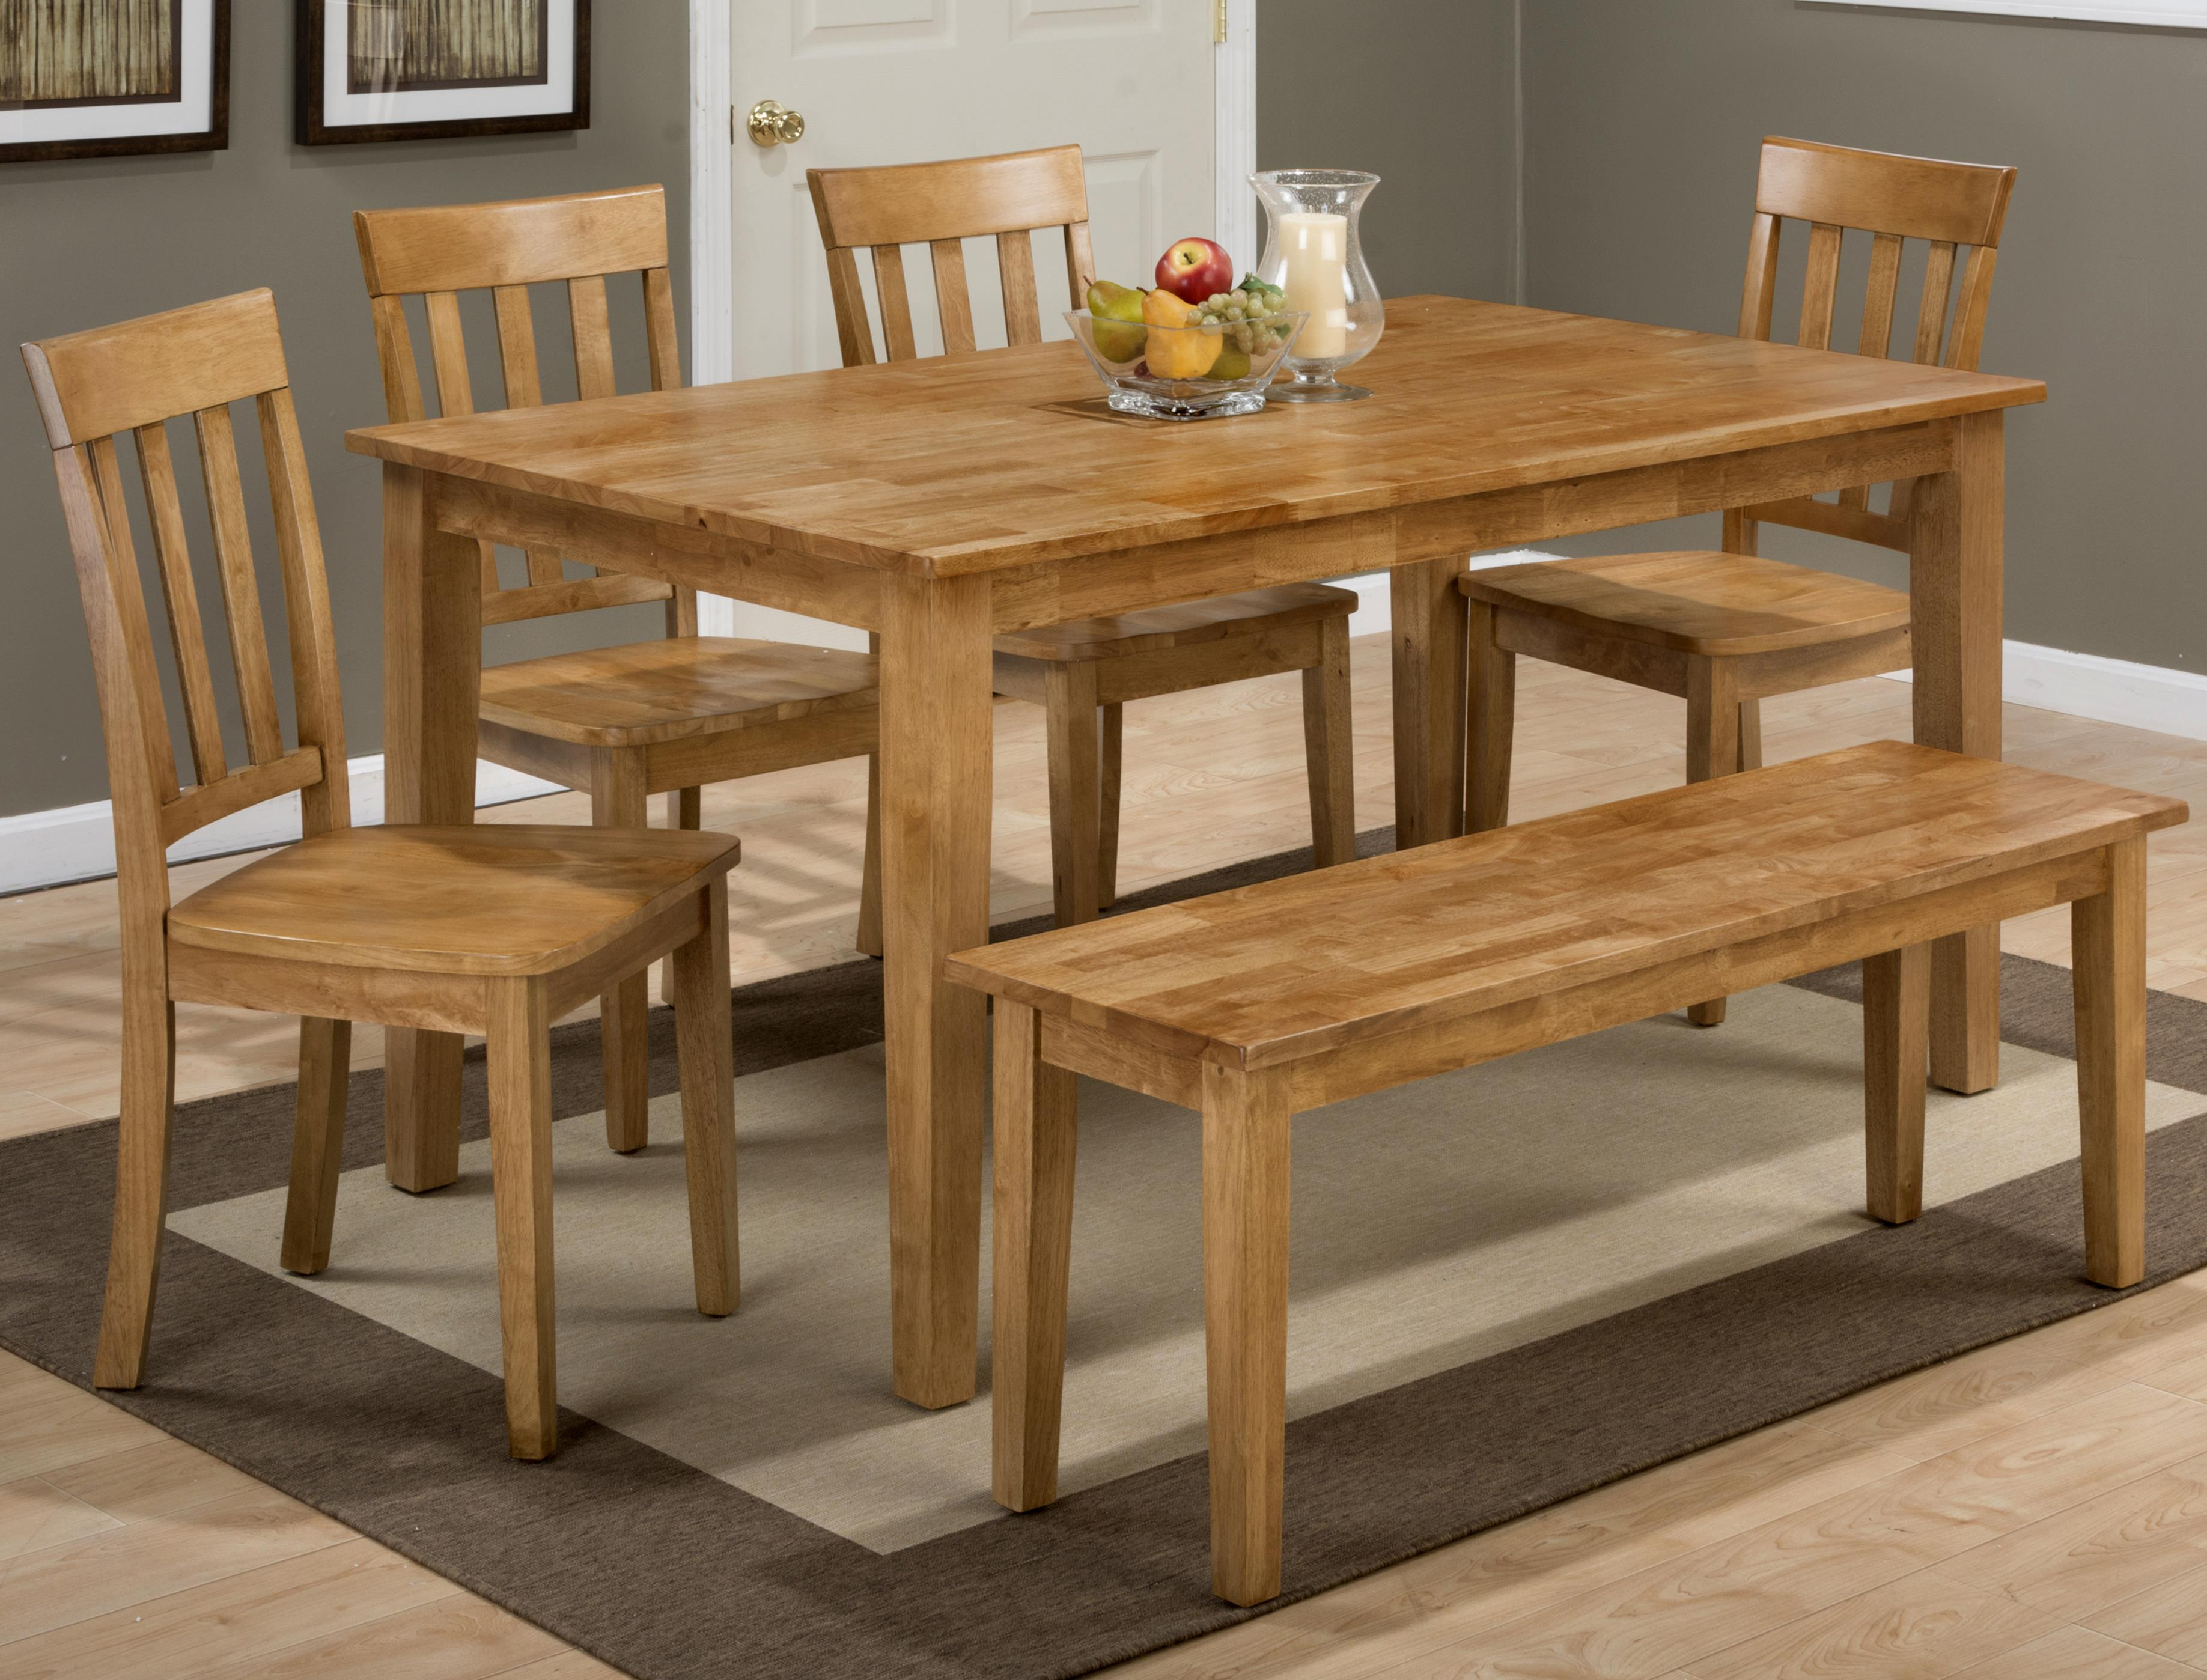 Simplicity Rectangle Dining Table Set with Bench by Jofran at Jofran